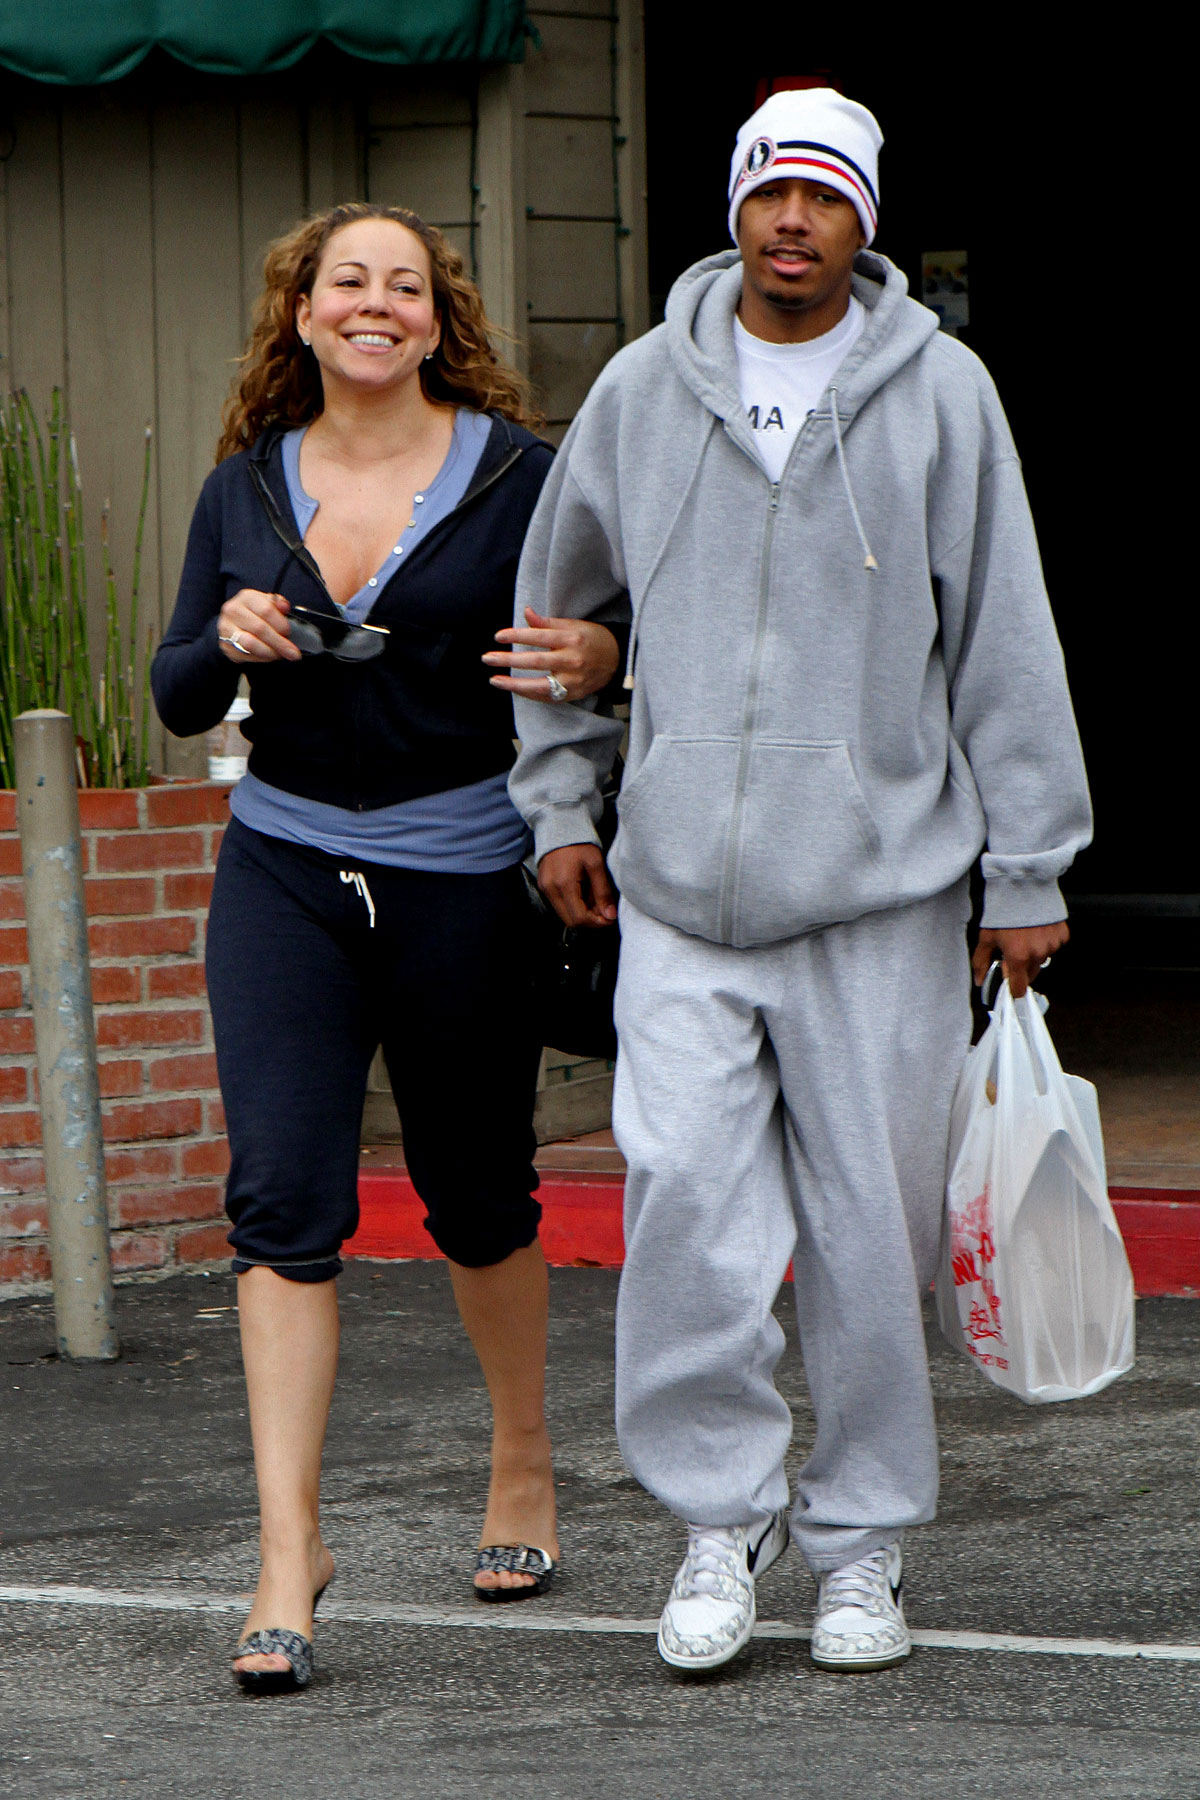 Celebrities Wear Sweatpants, Just Like We Do (PHOTOS)